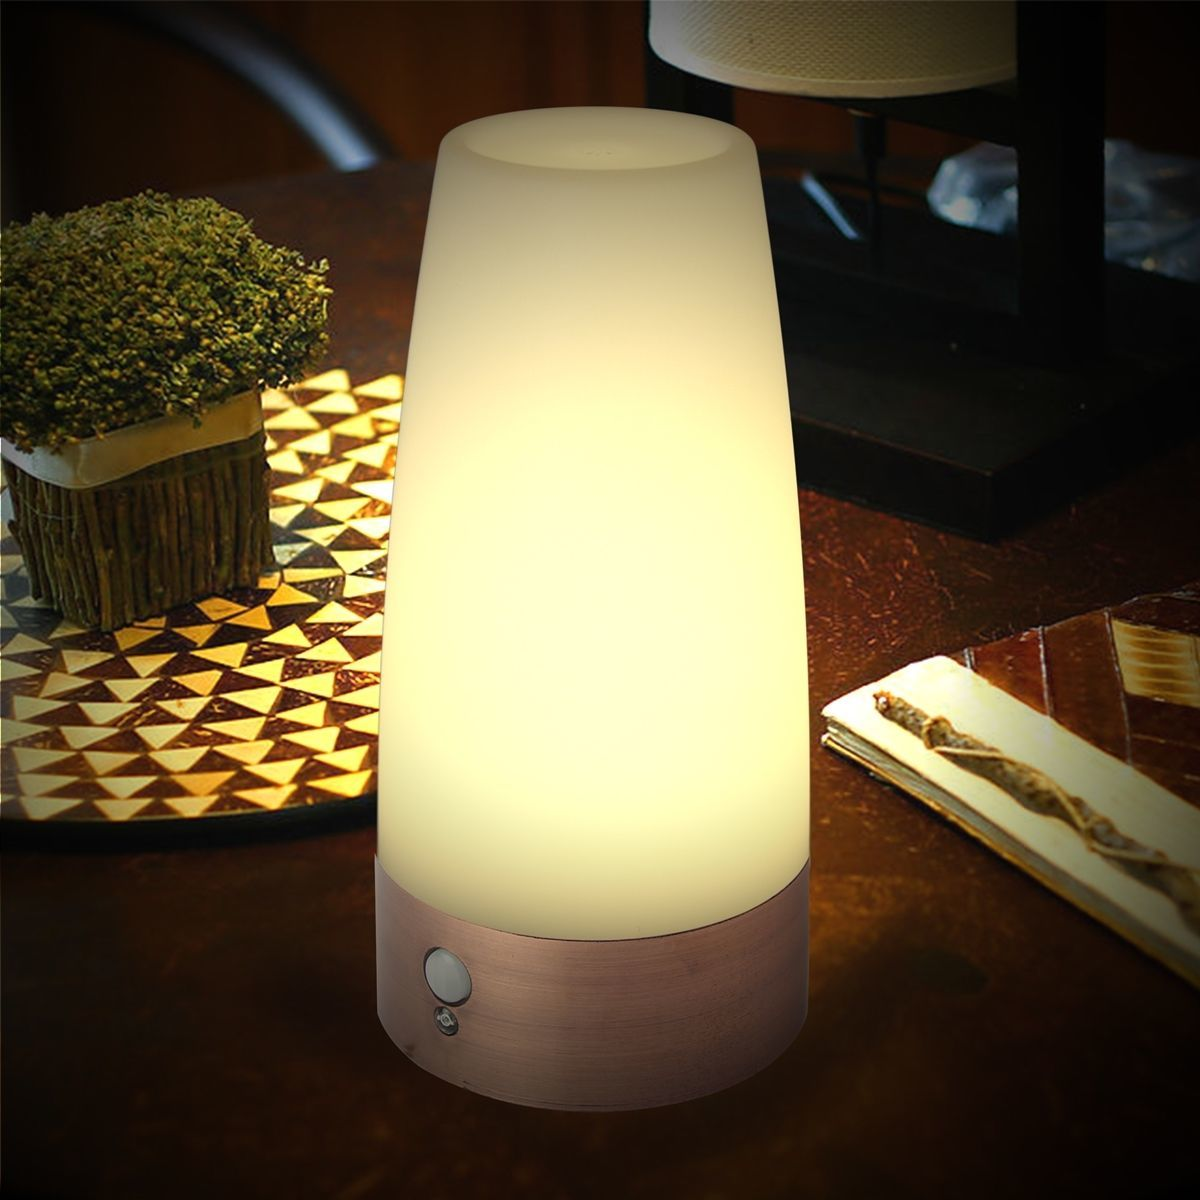 GAKTAI Wireless PIR Motion Auto Sensor Battery Operated LED Warm White Night Light Bedroom Table Lamp 3 Modes (Round)